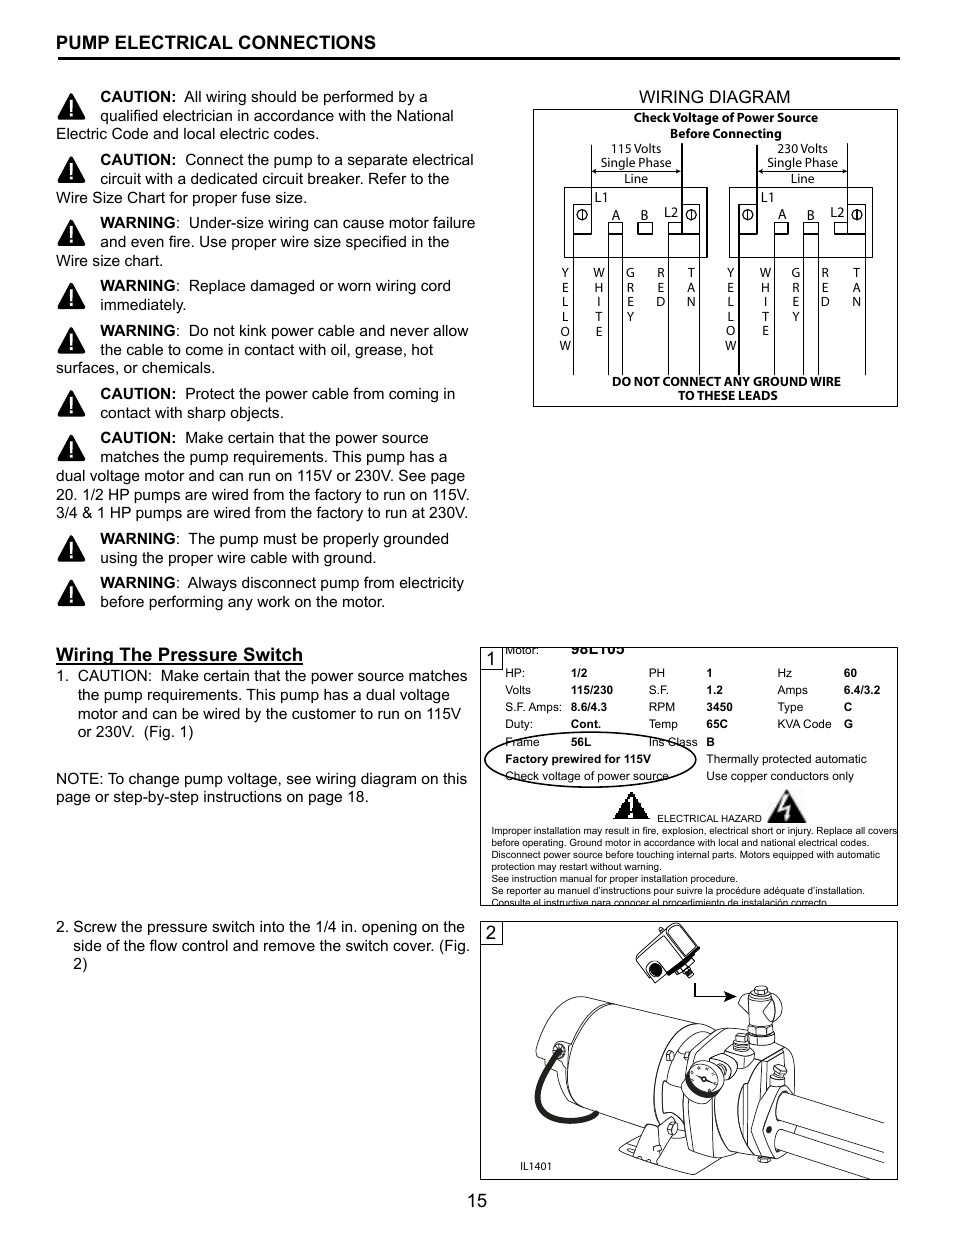 hight resolution of 15 pump electrical connections 1wiring the pressure switch wiring diagram flint walling